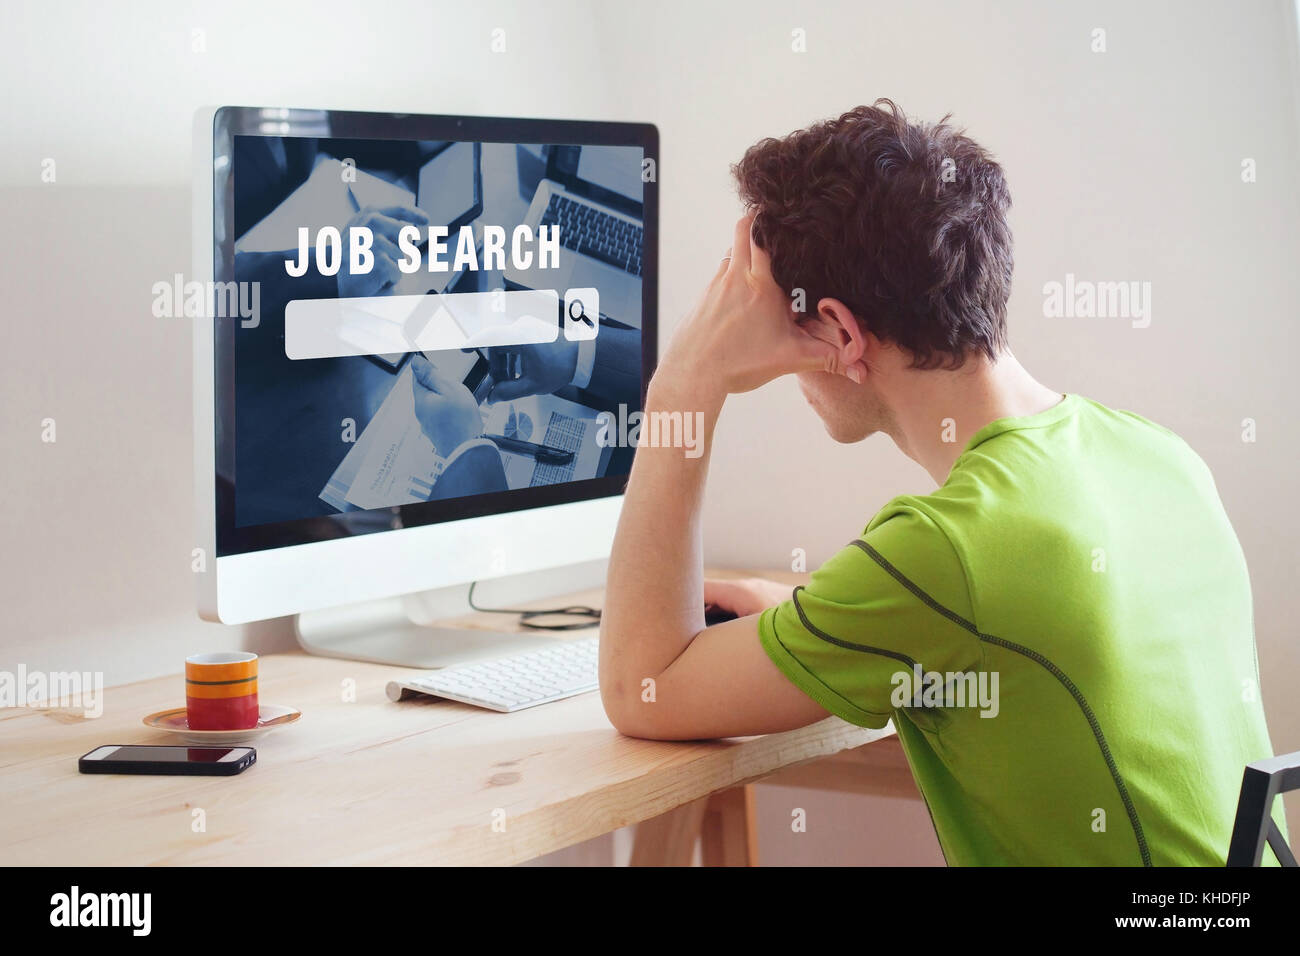 unemployment concept, job search on internet, man at home looking for good career - Stock Image